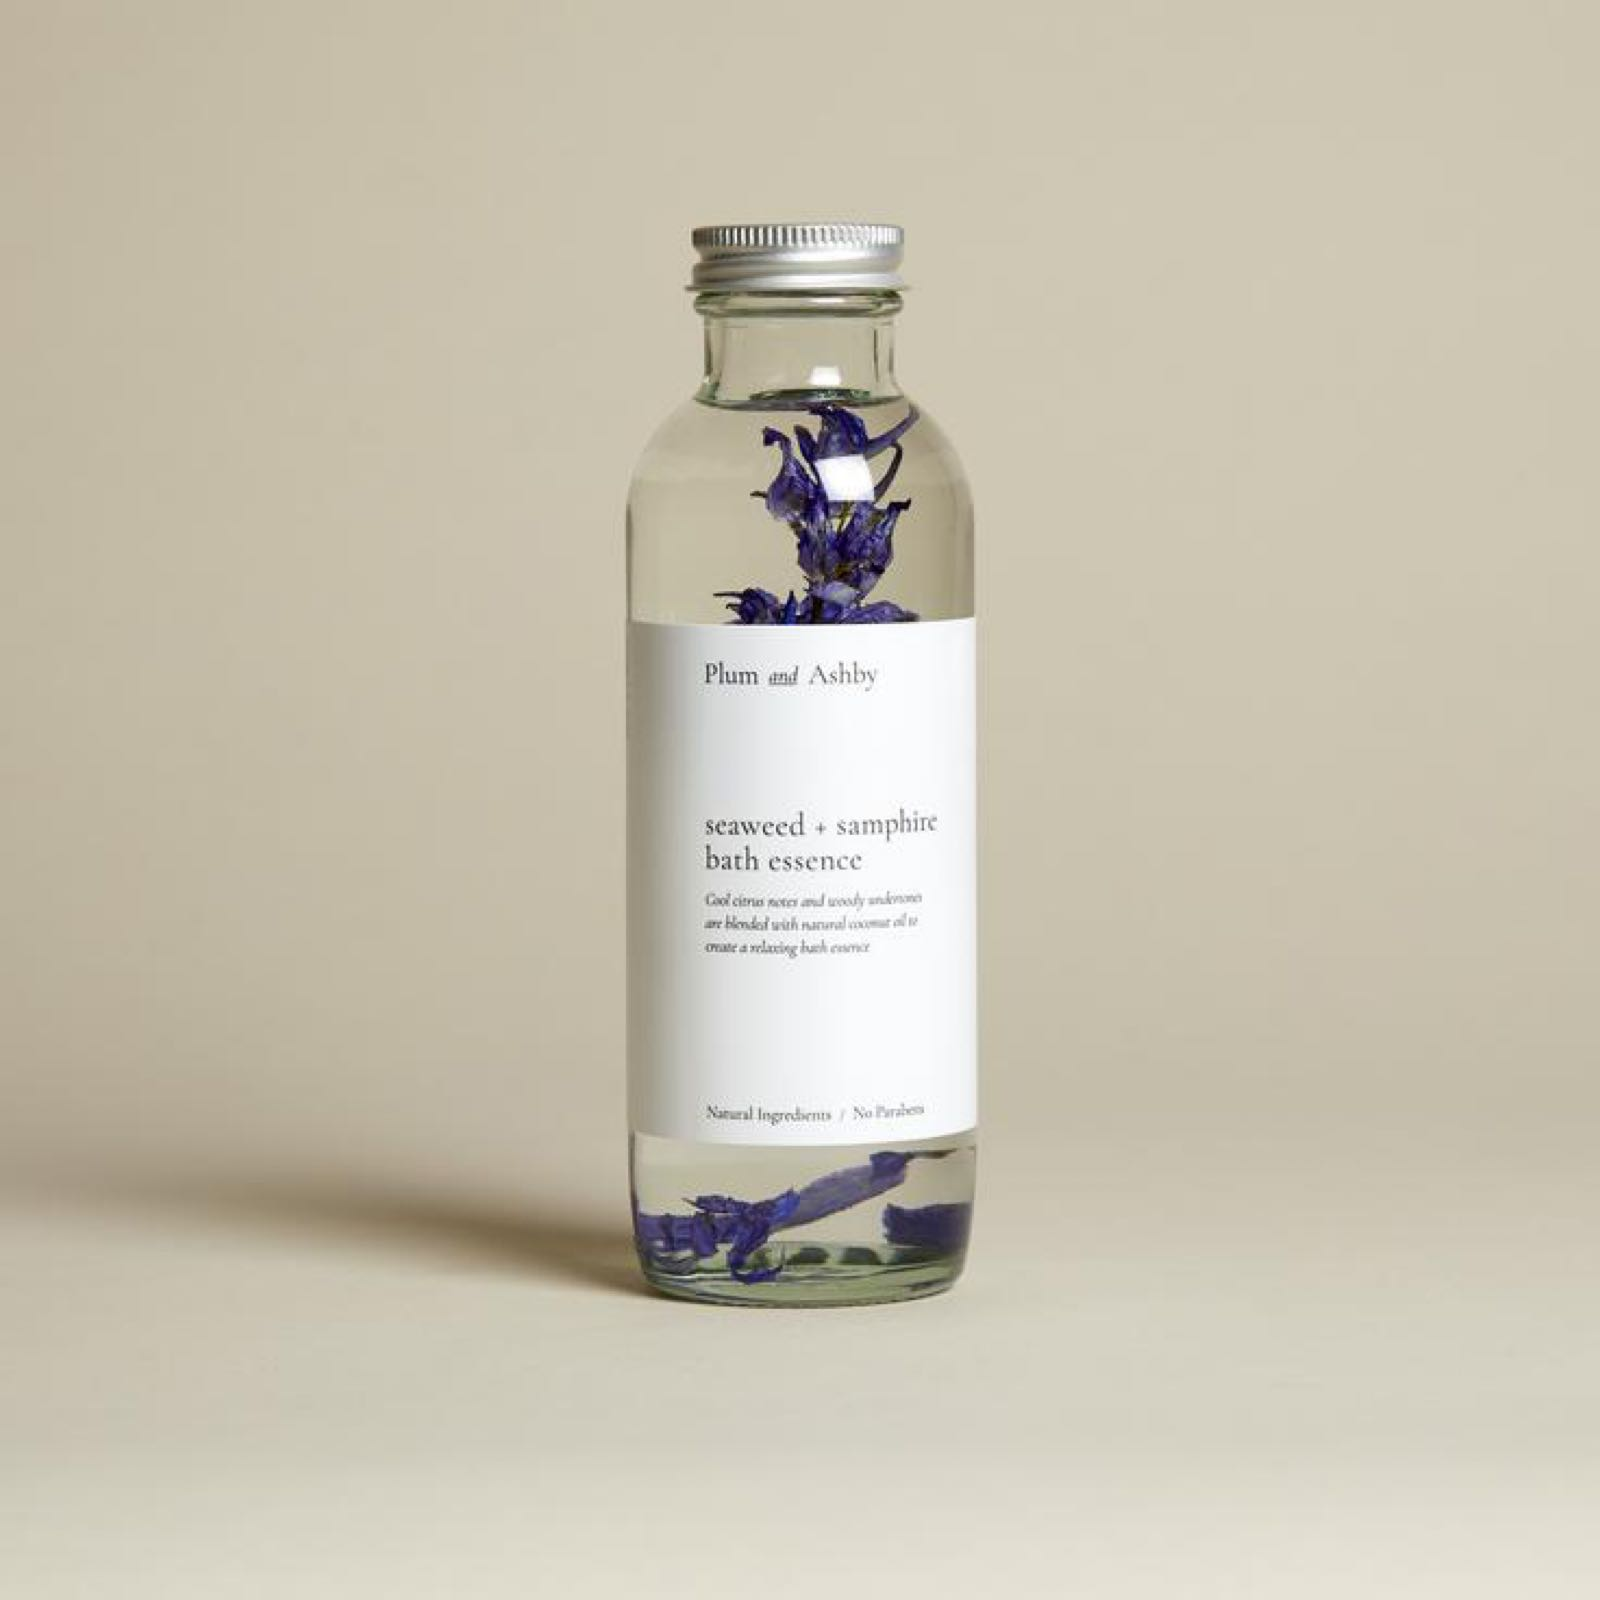 Plum & Ashby Seaweed & Samphire Bath Essence 225ml made with Natural Oils for a Luxurious Bath